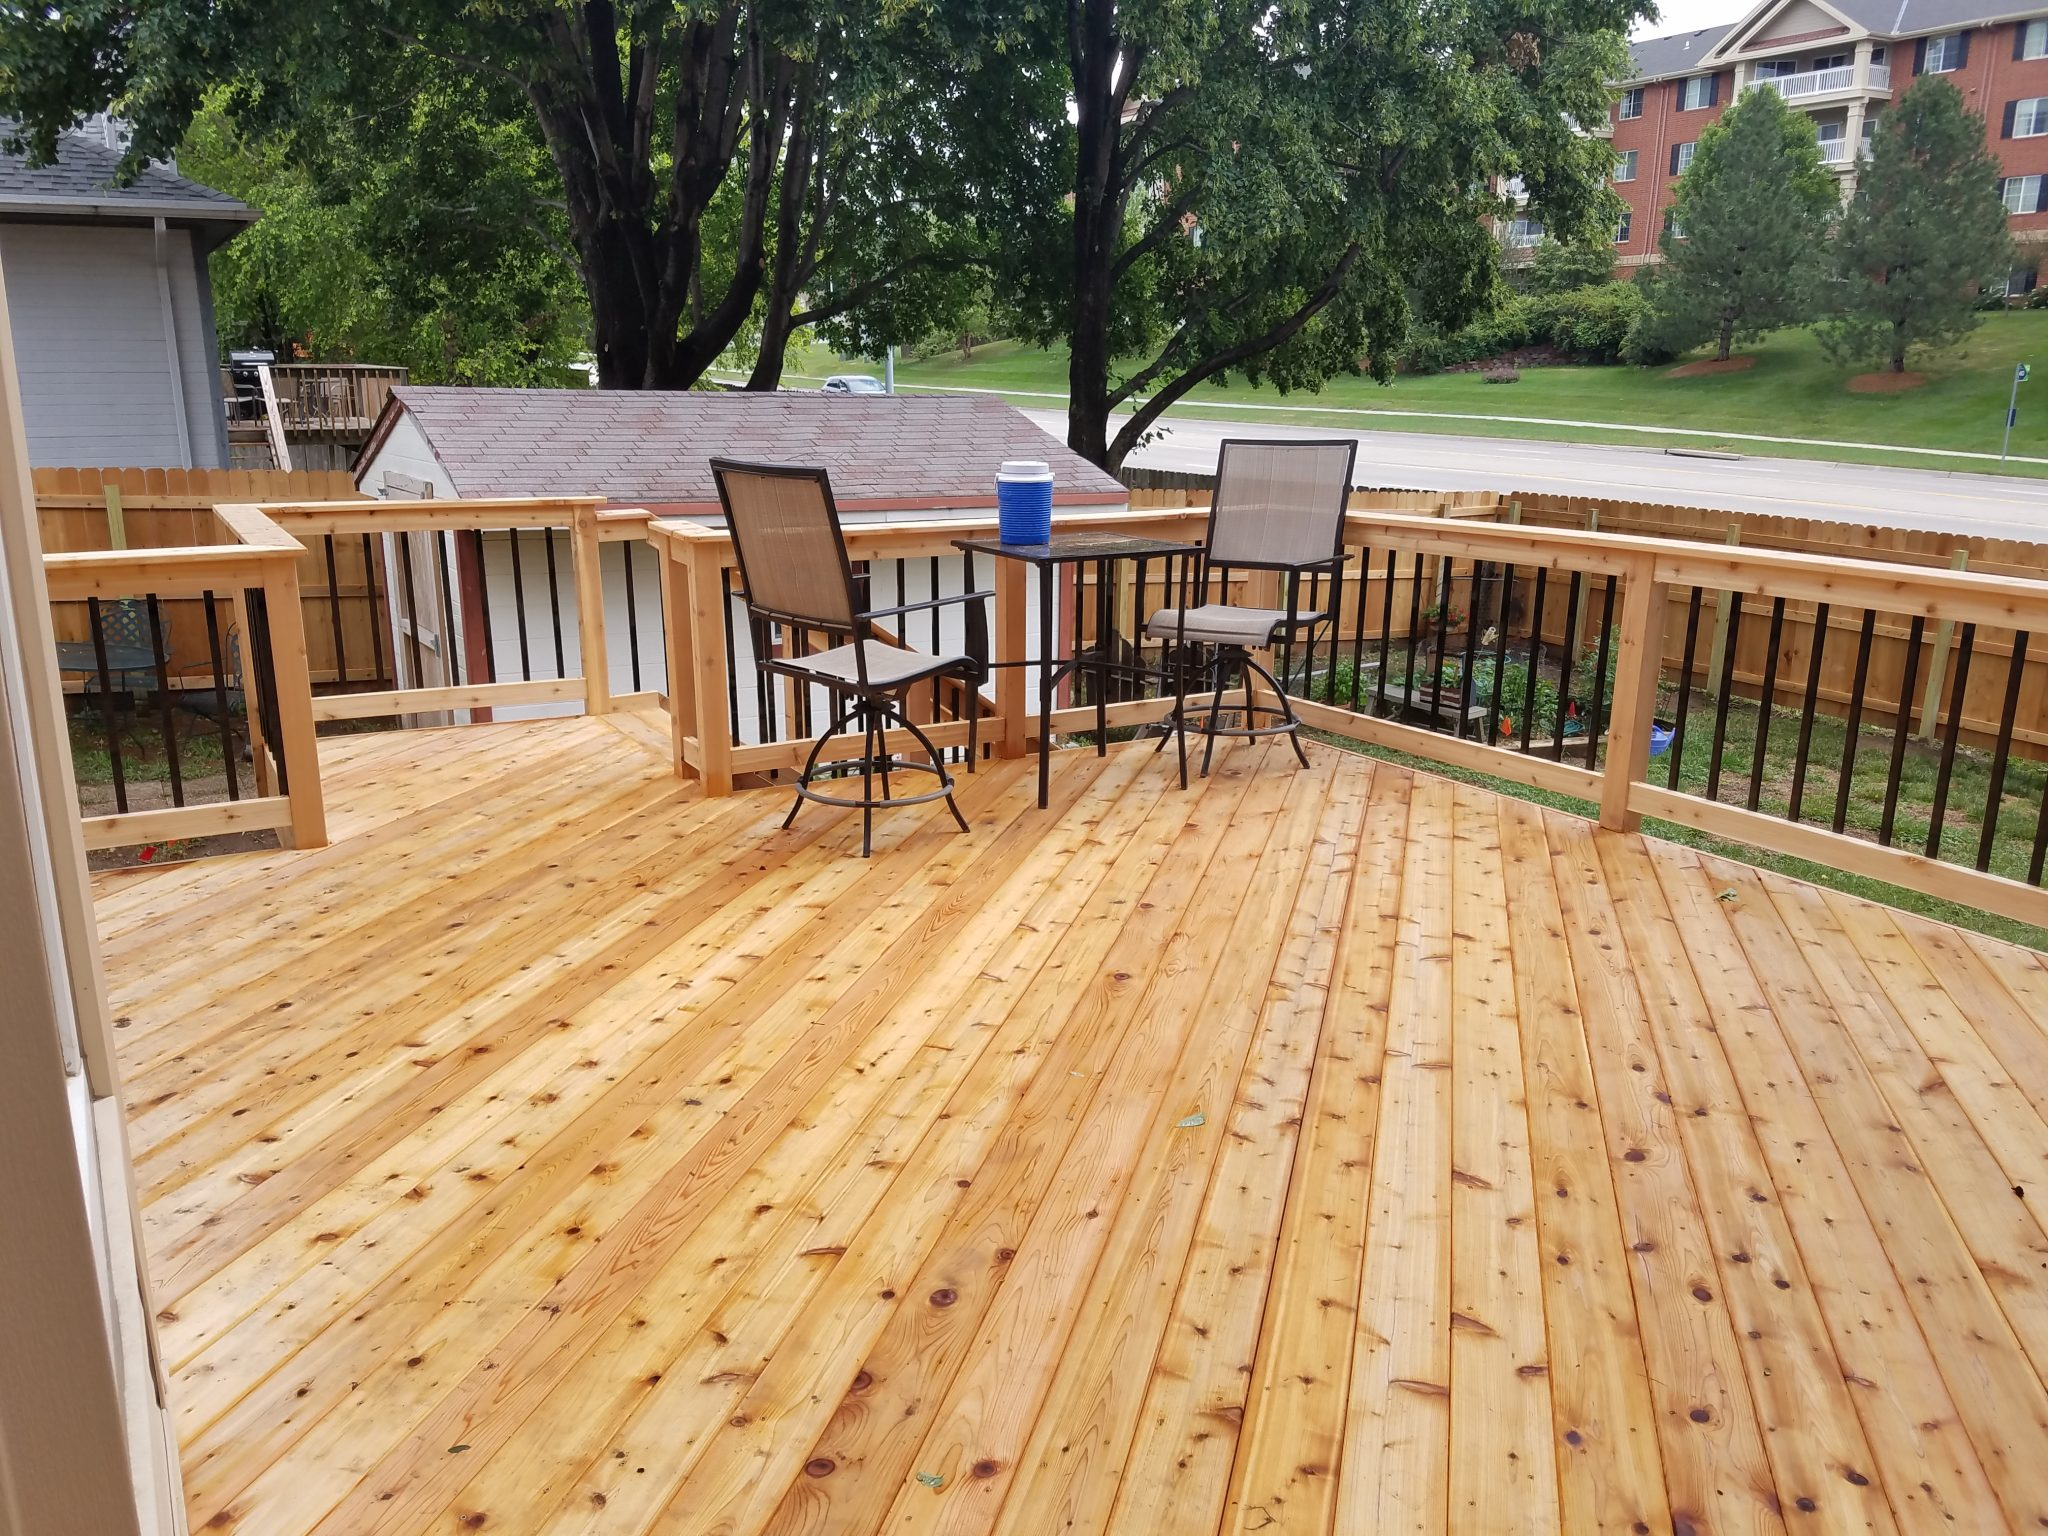 Rebuilding New Deck